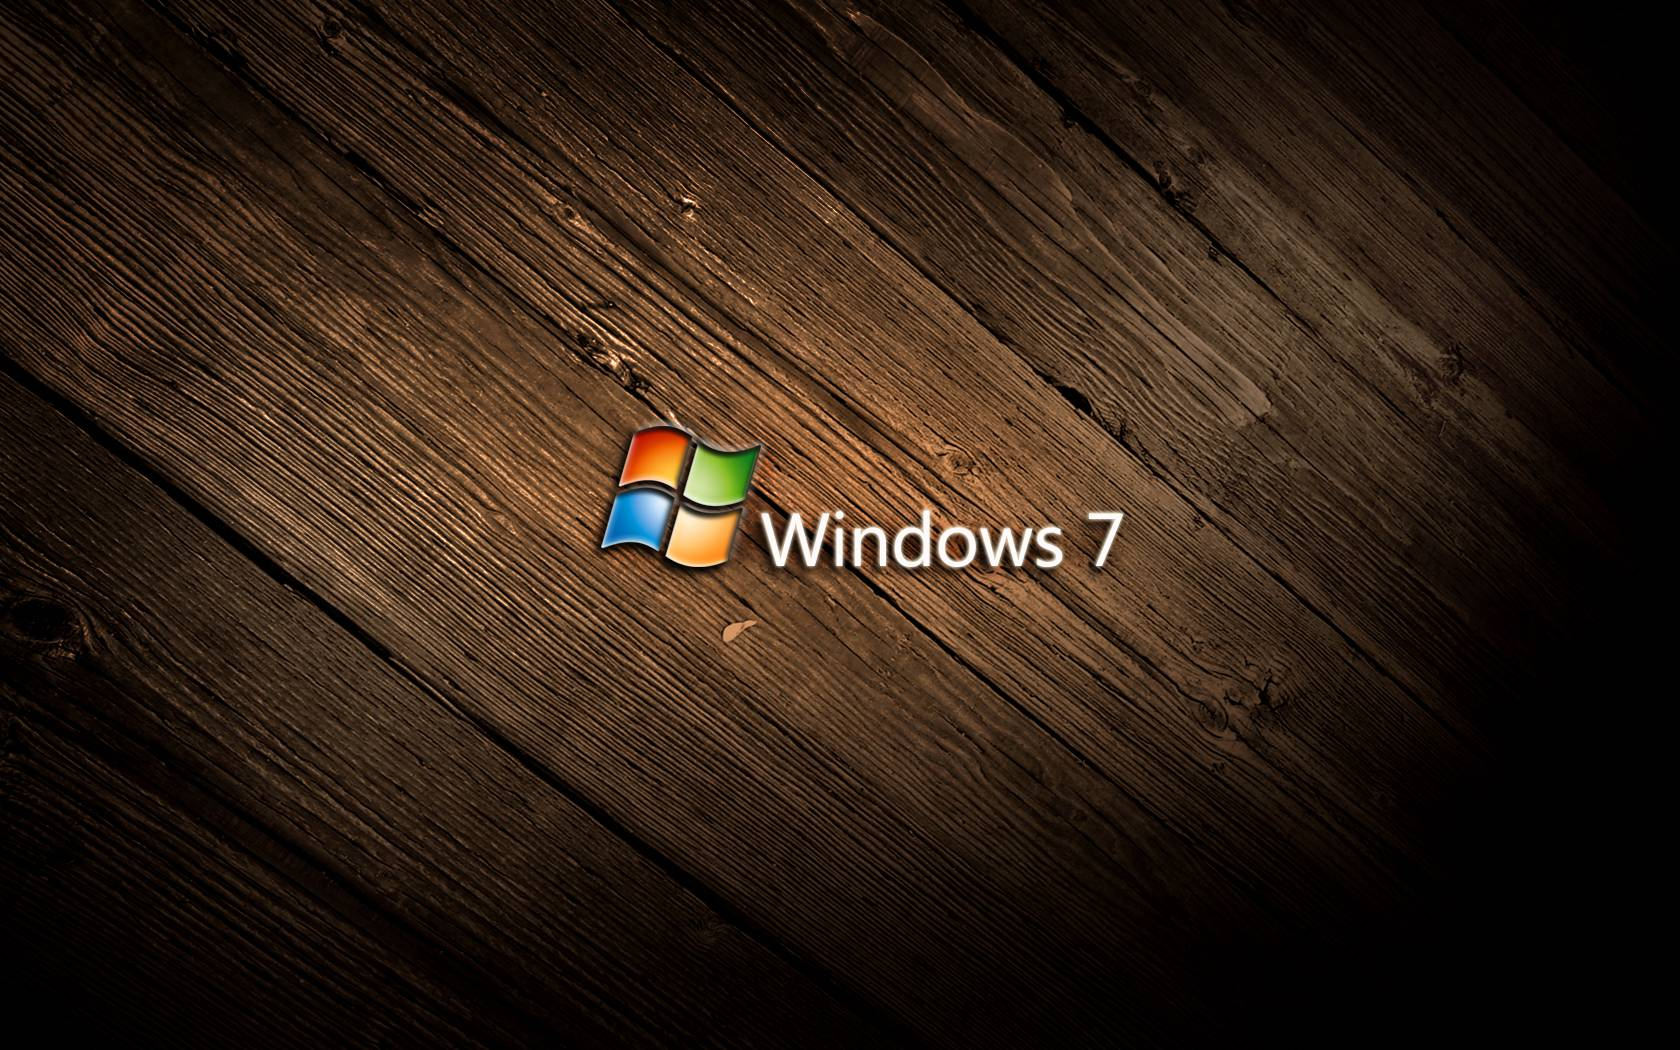 Download Windows 7 HD Wallpapers